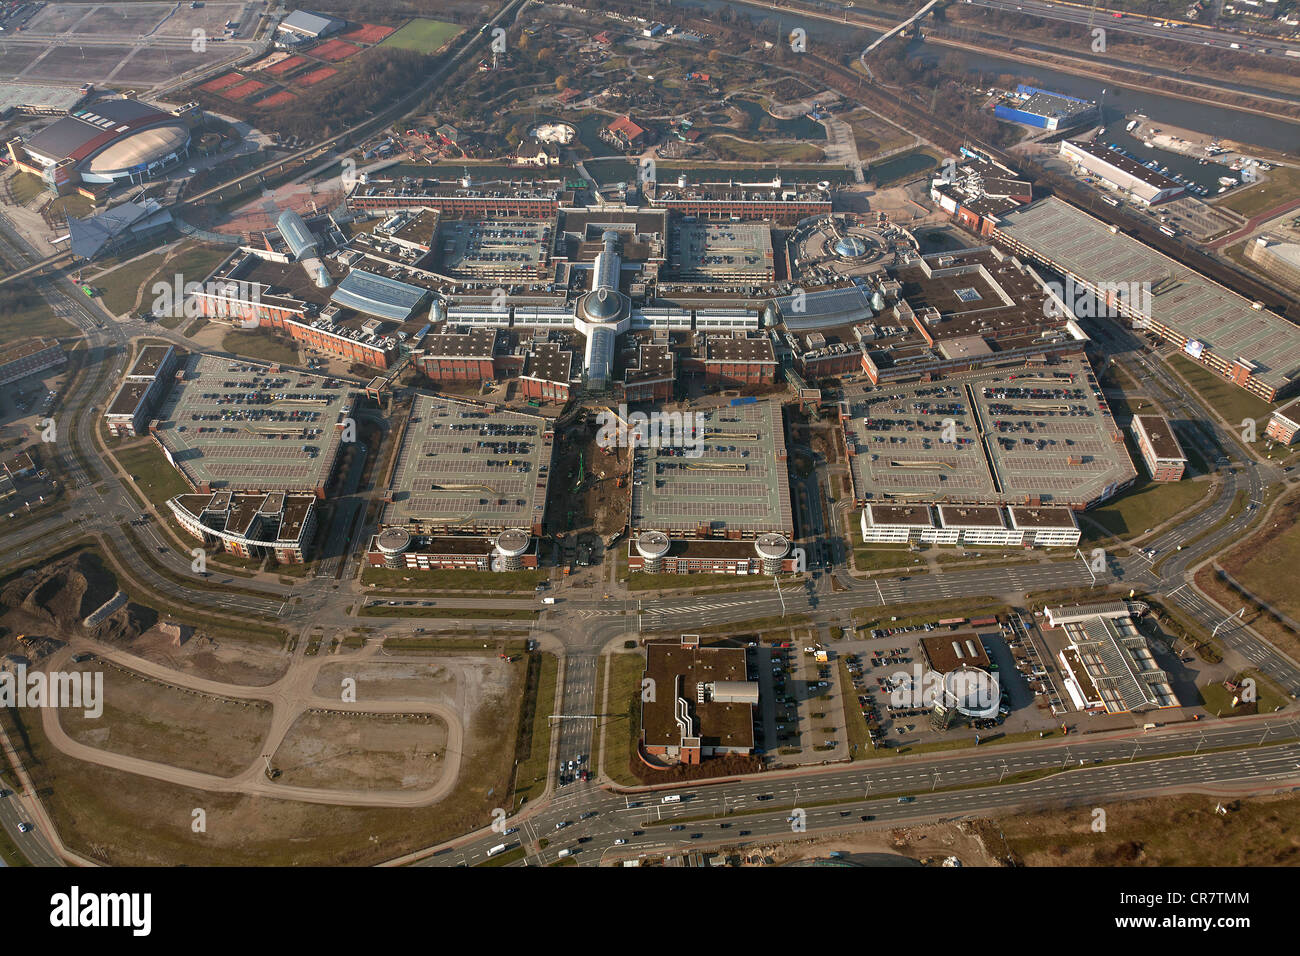 Aerial view, extension of the Centro Oberhausen mall, C and O extension, entrance area, Oberhausen, Ruhrgebiet region Stock Photo